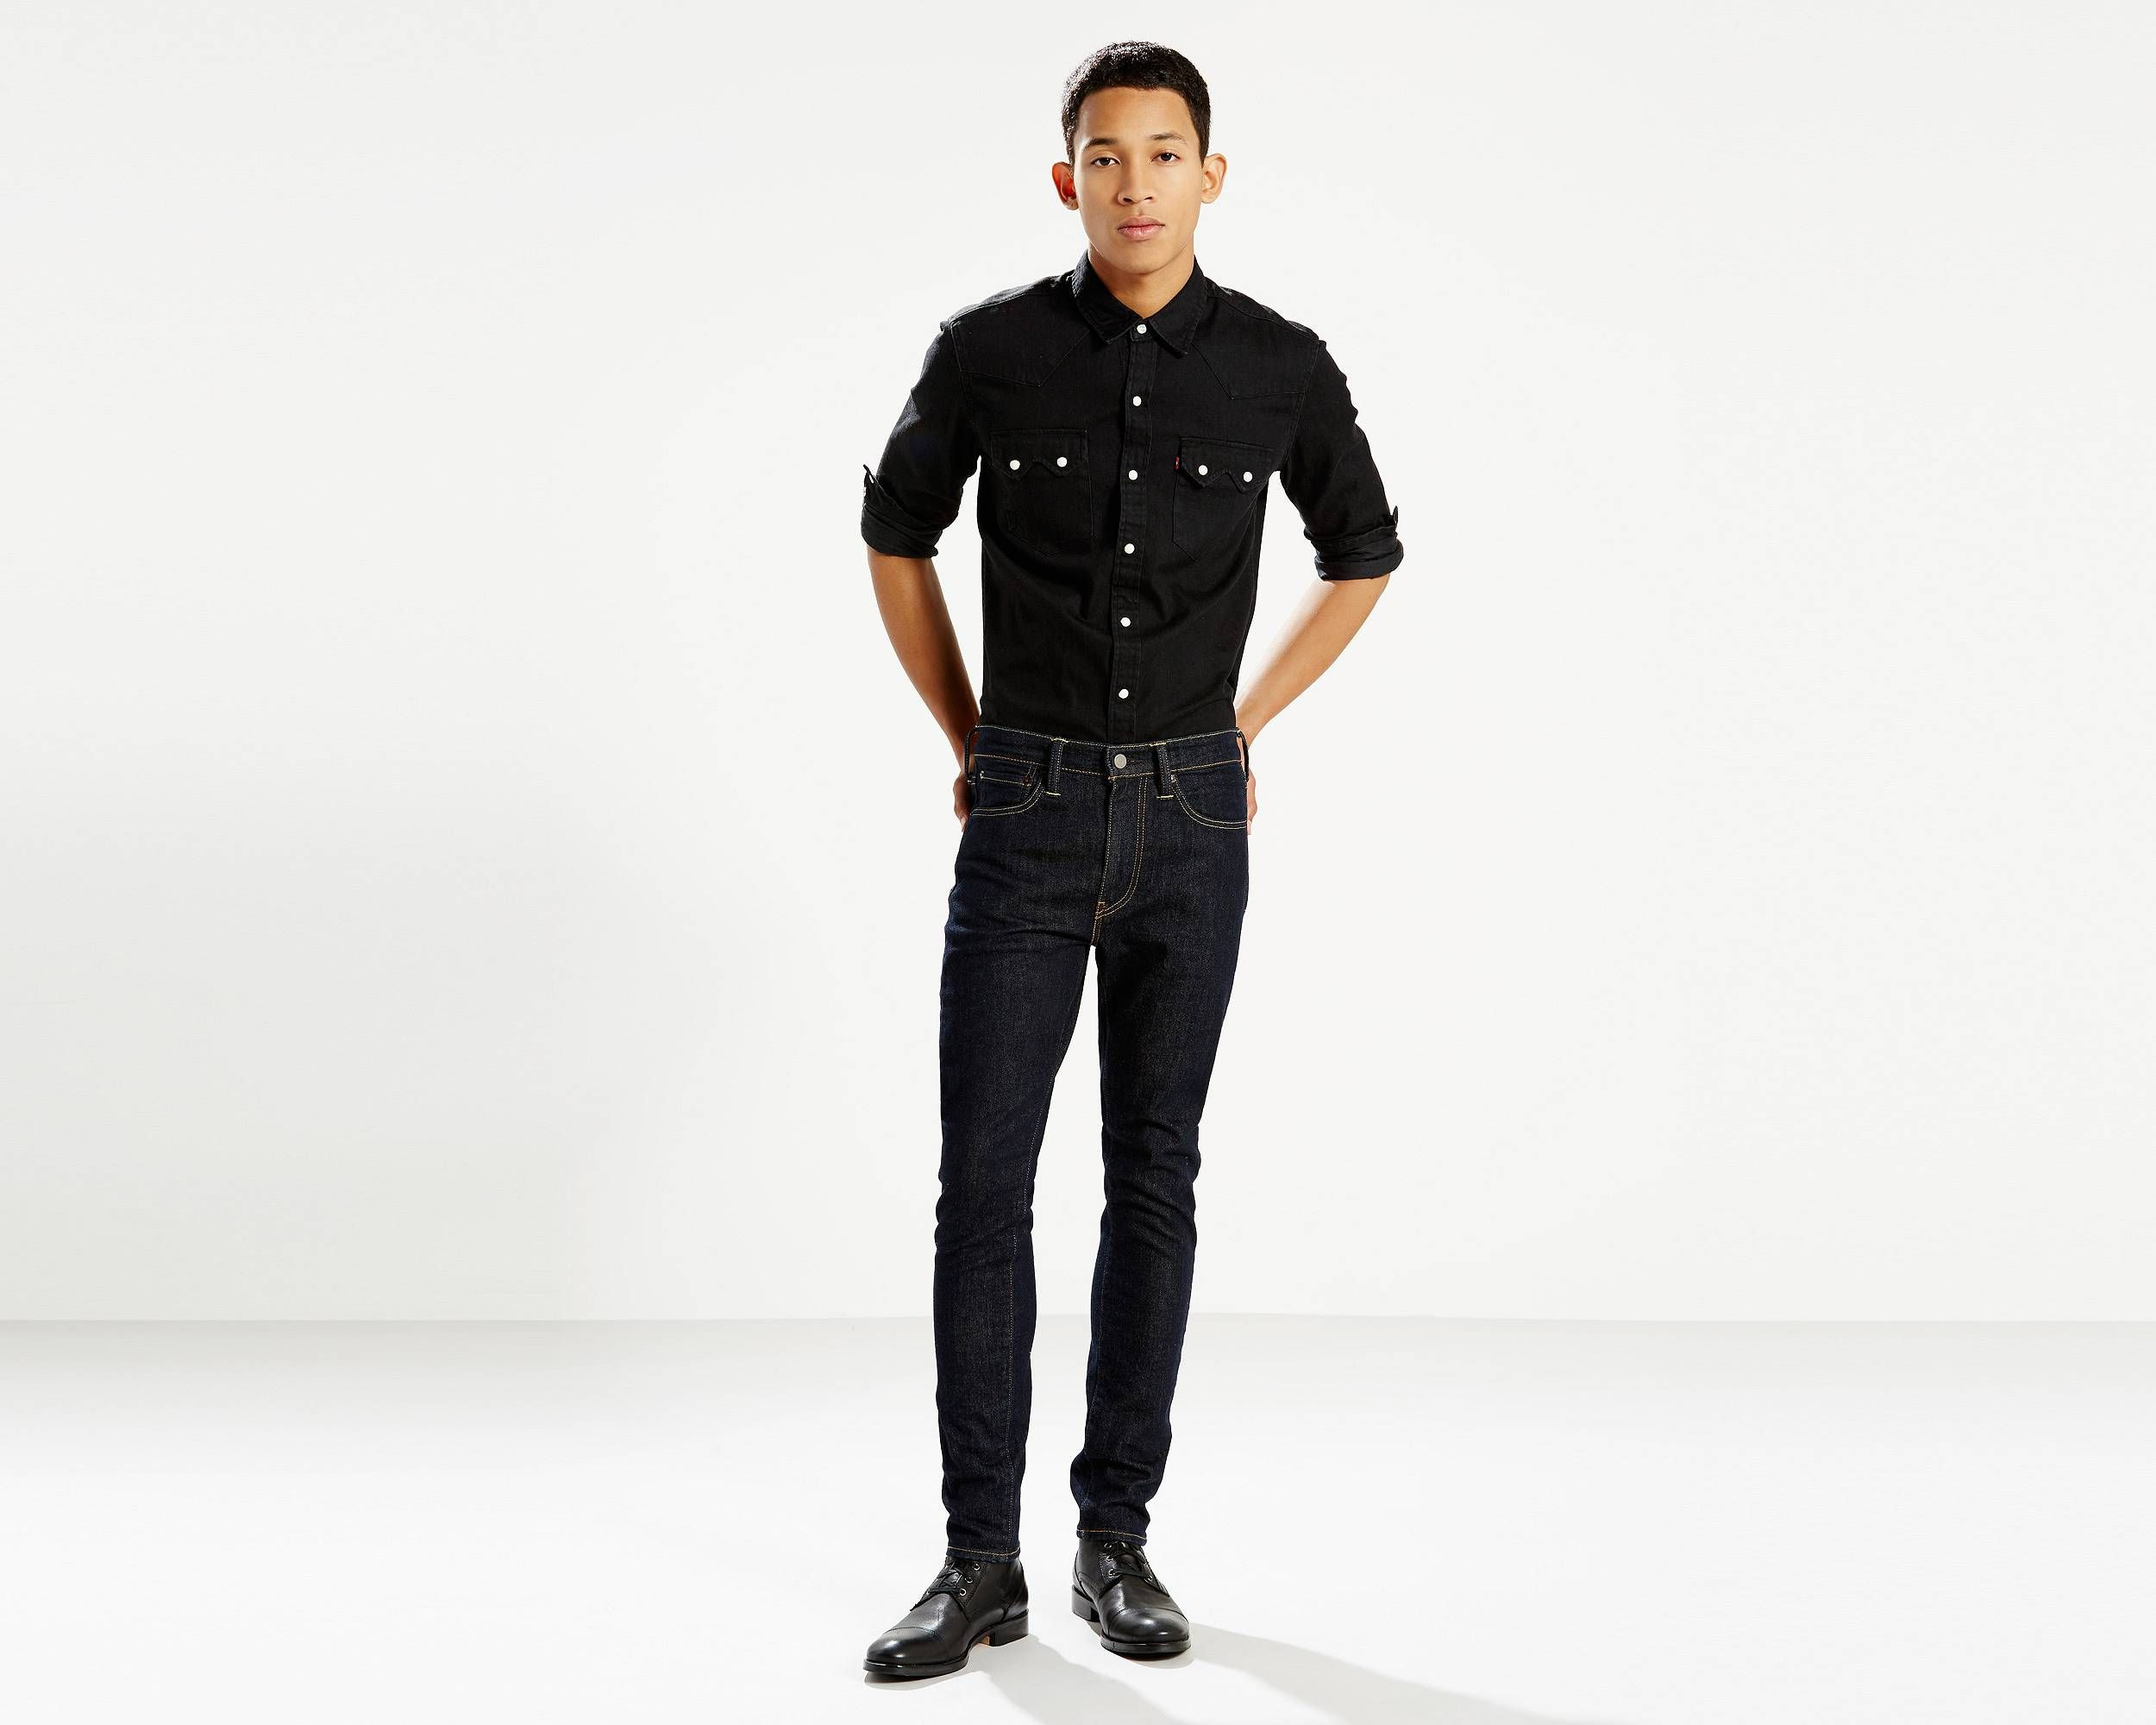 A new fit for the guy that likes his jeans cut super close, the 519™ Extreme Skinny Jeans are the classic skinny made even skinnier. Features added stretch for extra comfort and a fit that sits below the waist and is super skinny from the hip through the ankle. Best for slim builds.